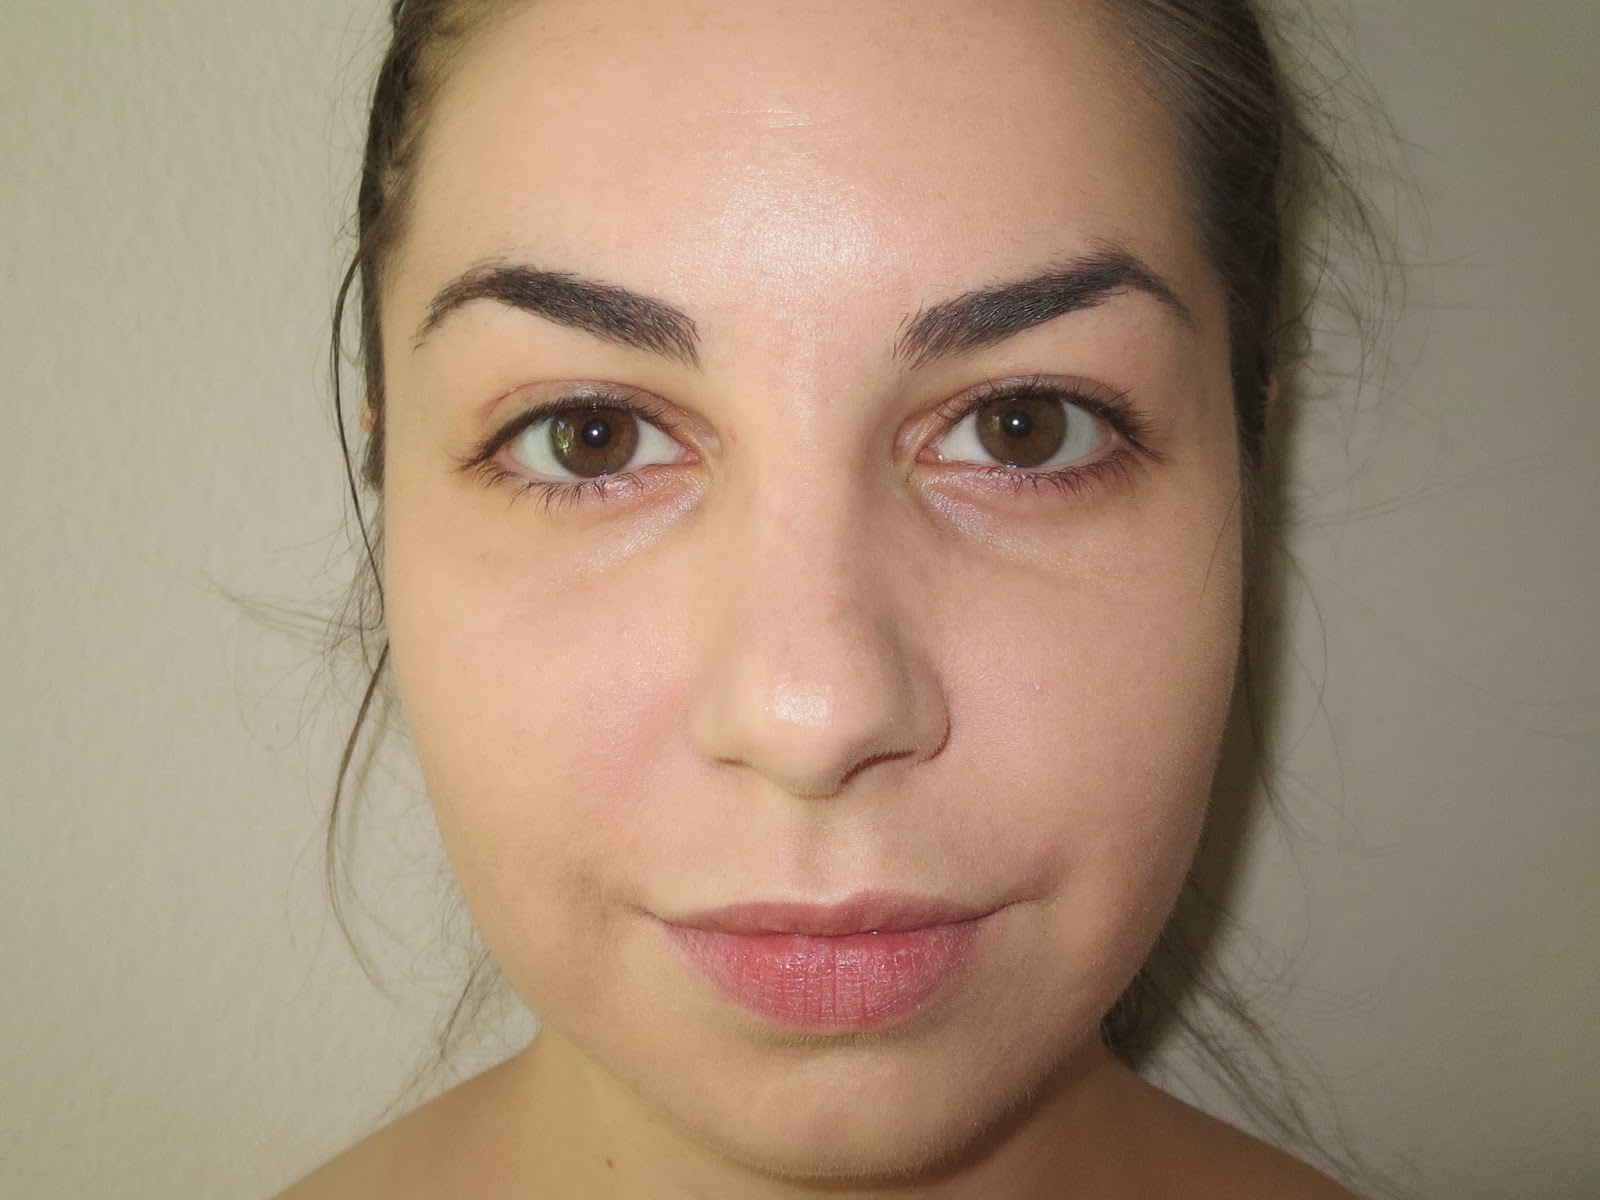 a picture of results after one pump of Physician's Formula Touch of Glow Foundation in Light on skin